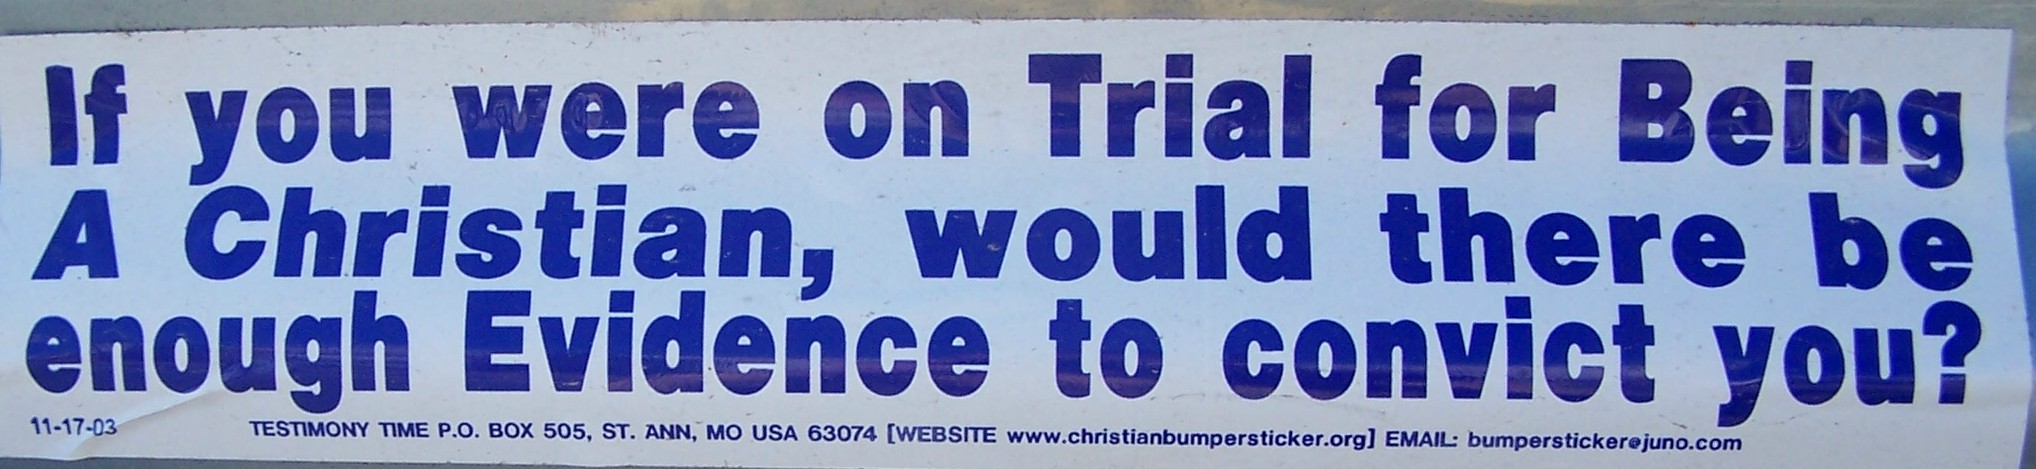 trial bumper sticker